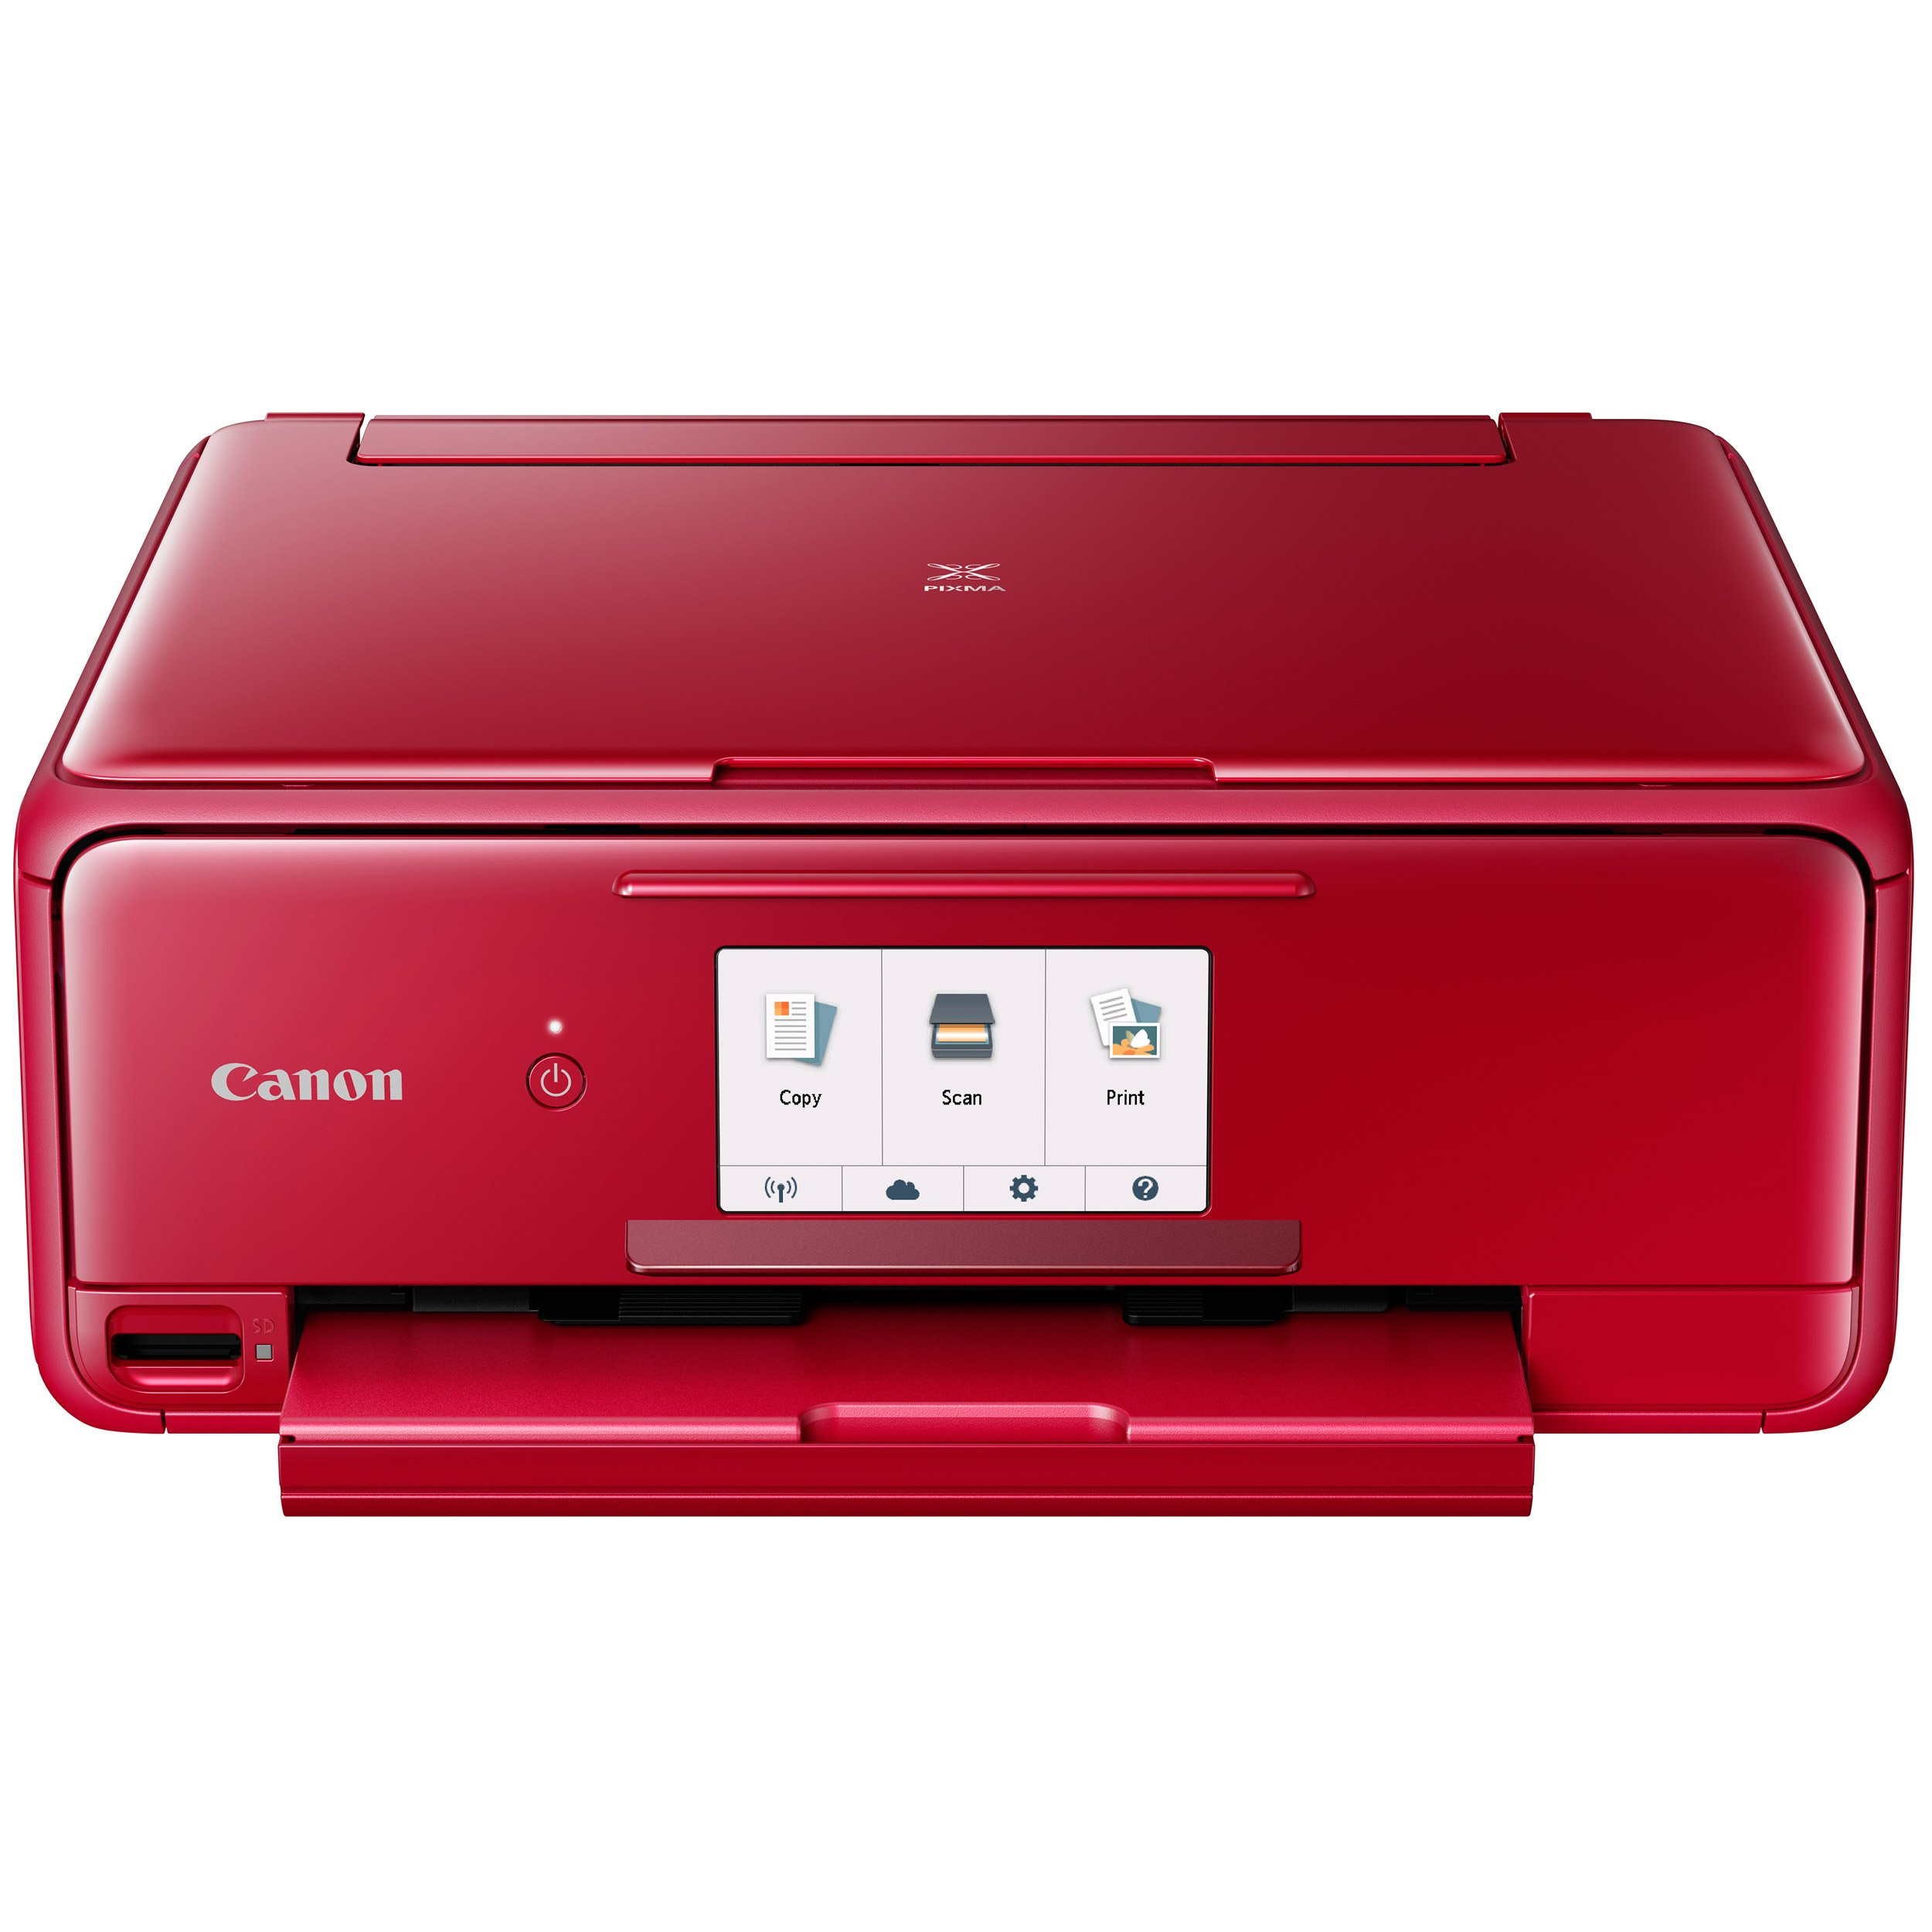 Canon Office Products 2230C042 TS8120 Wireless All-In-One Printer with Scanner and Copier: Mobile and Tablet Printing, with Airprint(TM) and Google Cloud Print compatible, Red by Canon